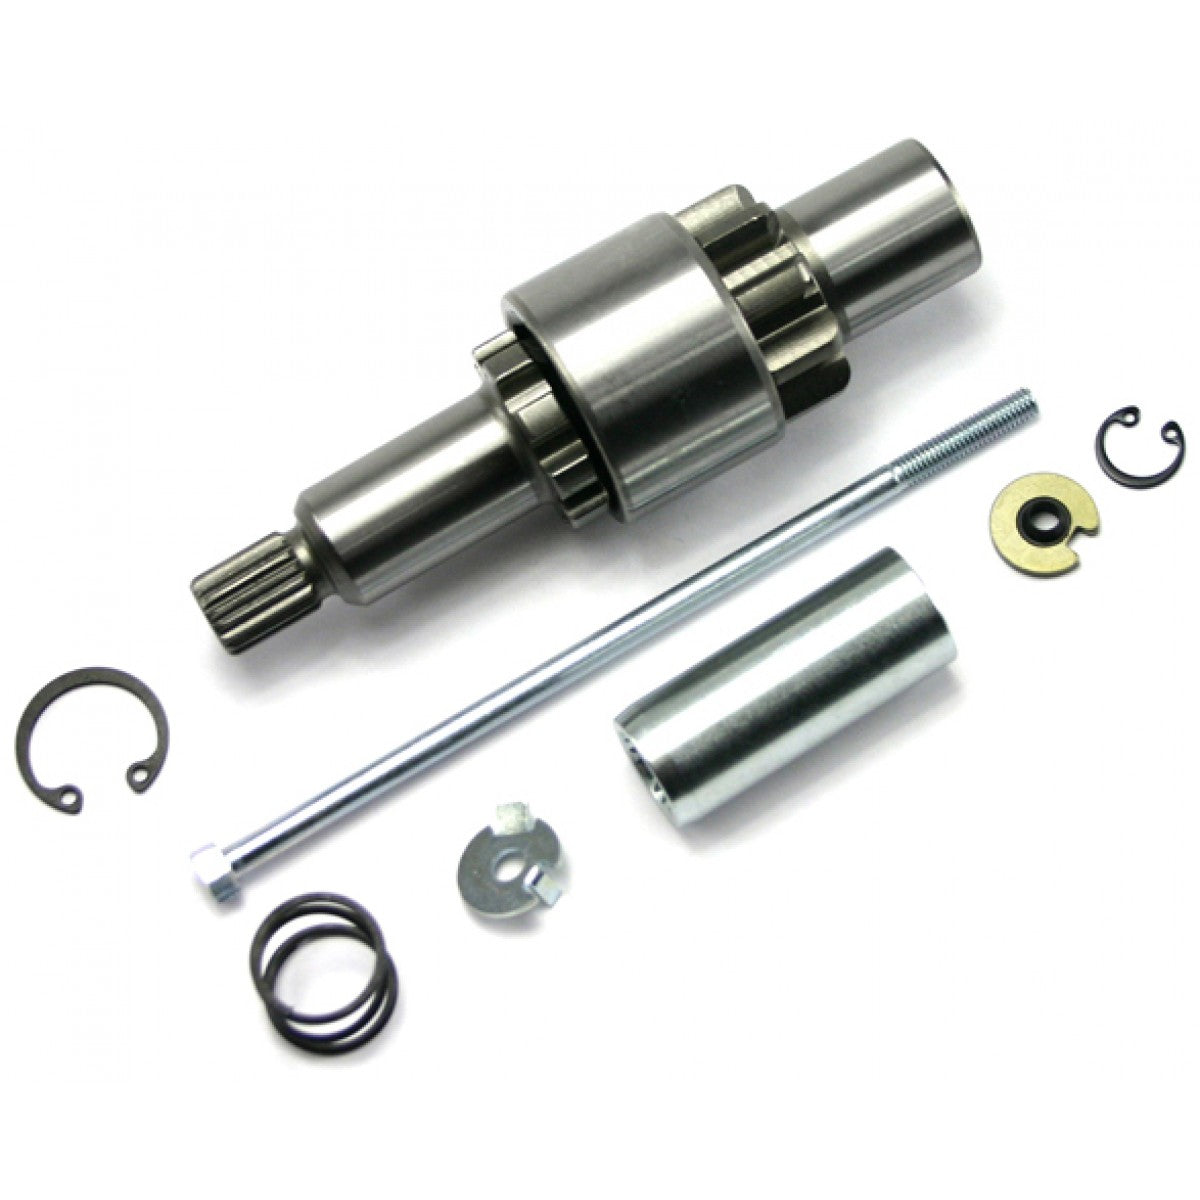 Spyke 465046 - Jackshaft Assembly with 9 Tooth Gear for 89-93 Big Twin Harley® Models